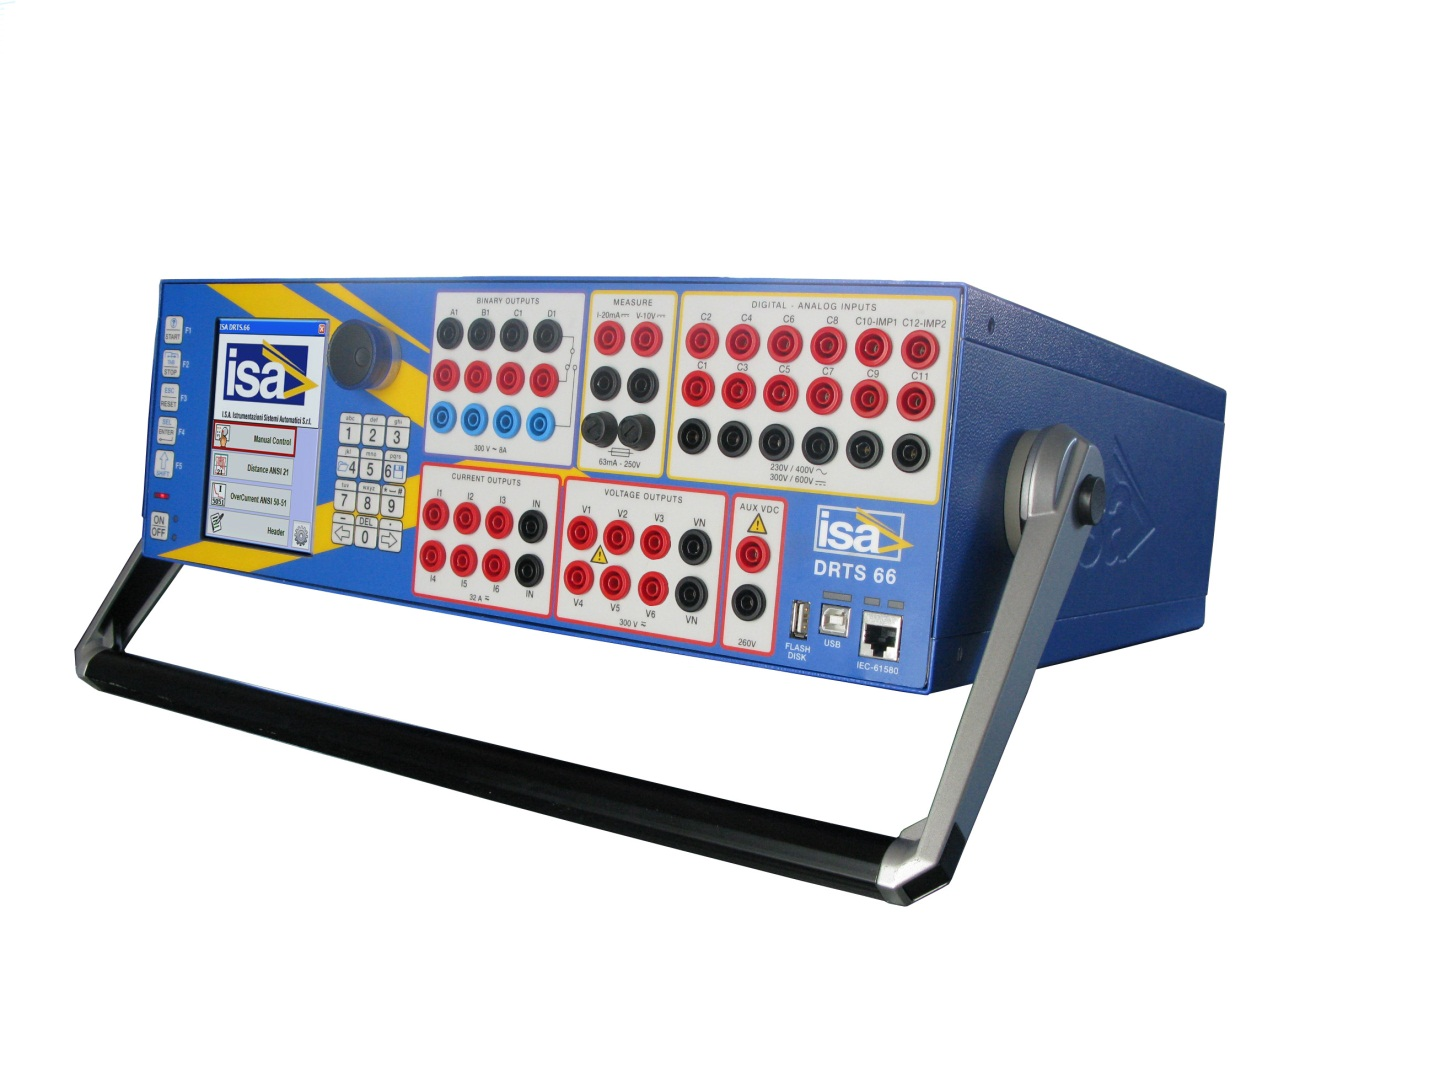 Protection Relay Test Progusa Electrical Testing Kit Single Phase Hi Current Tester Model T1000plus From Isa Can Be Called The Engineers Toolbox As It Is A Powerful Max 200a Source